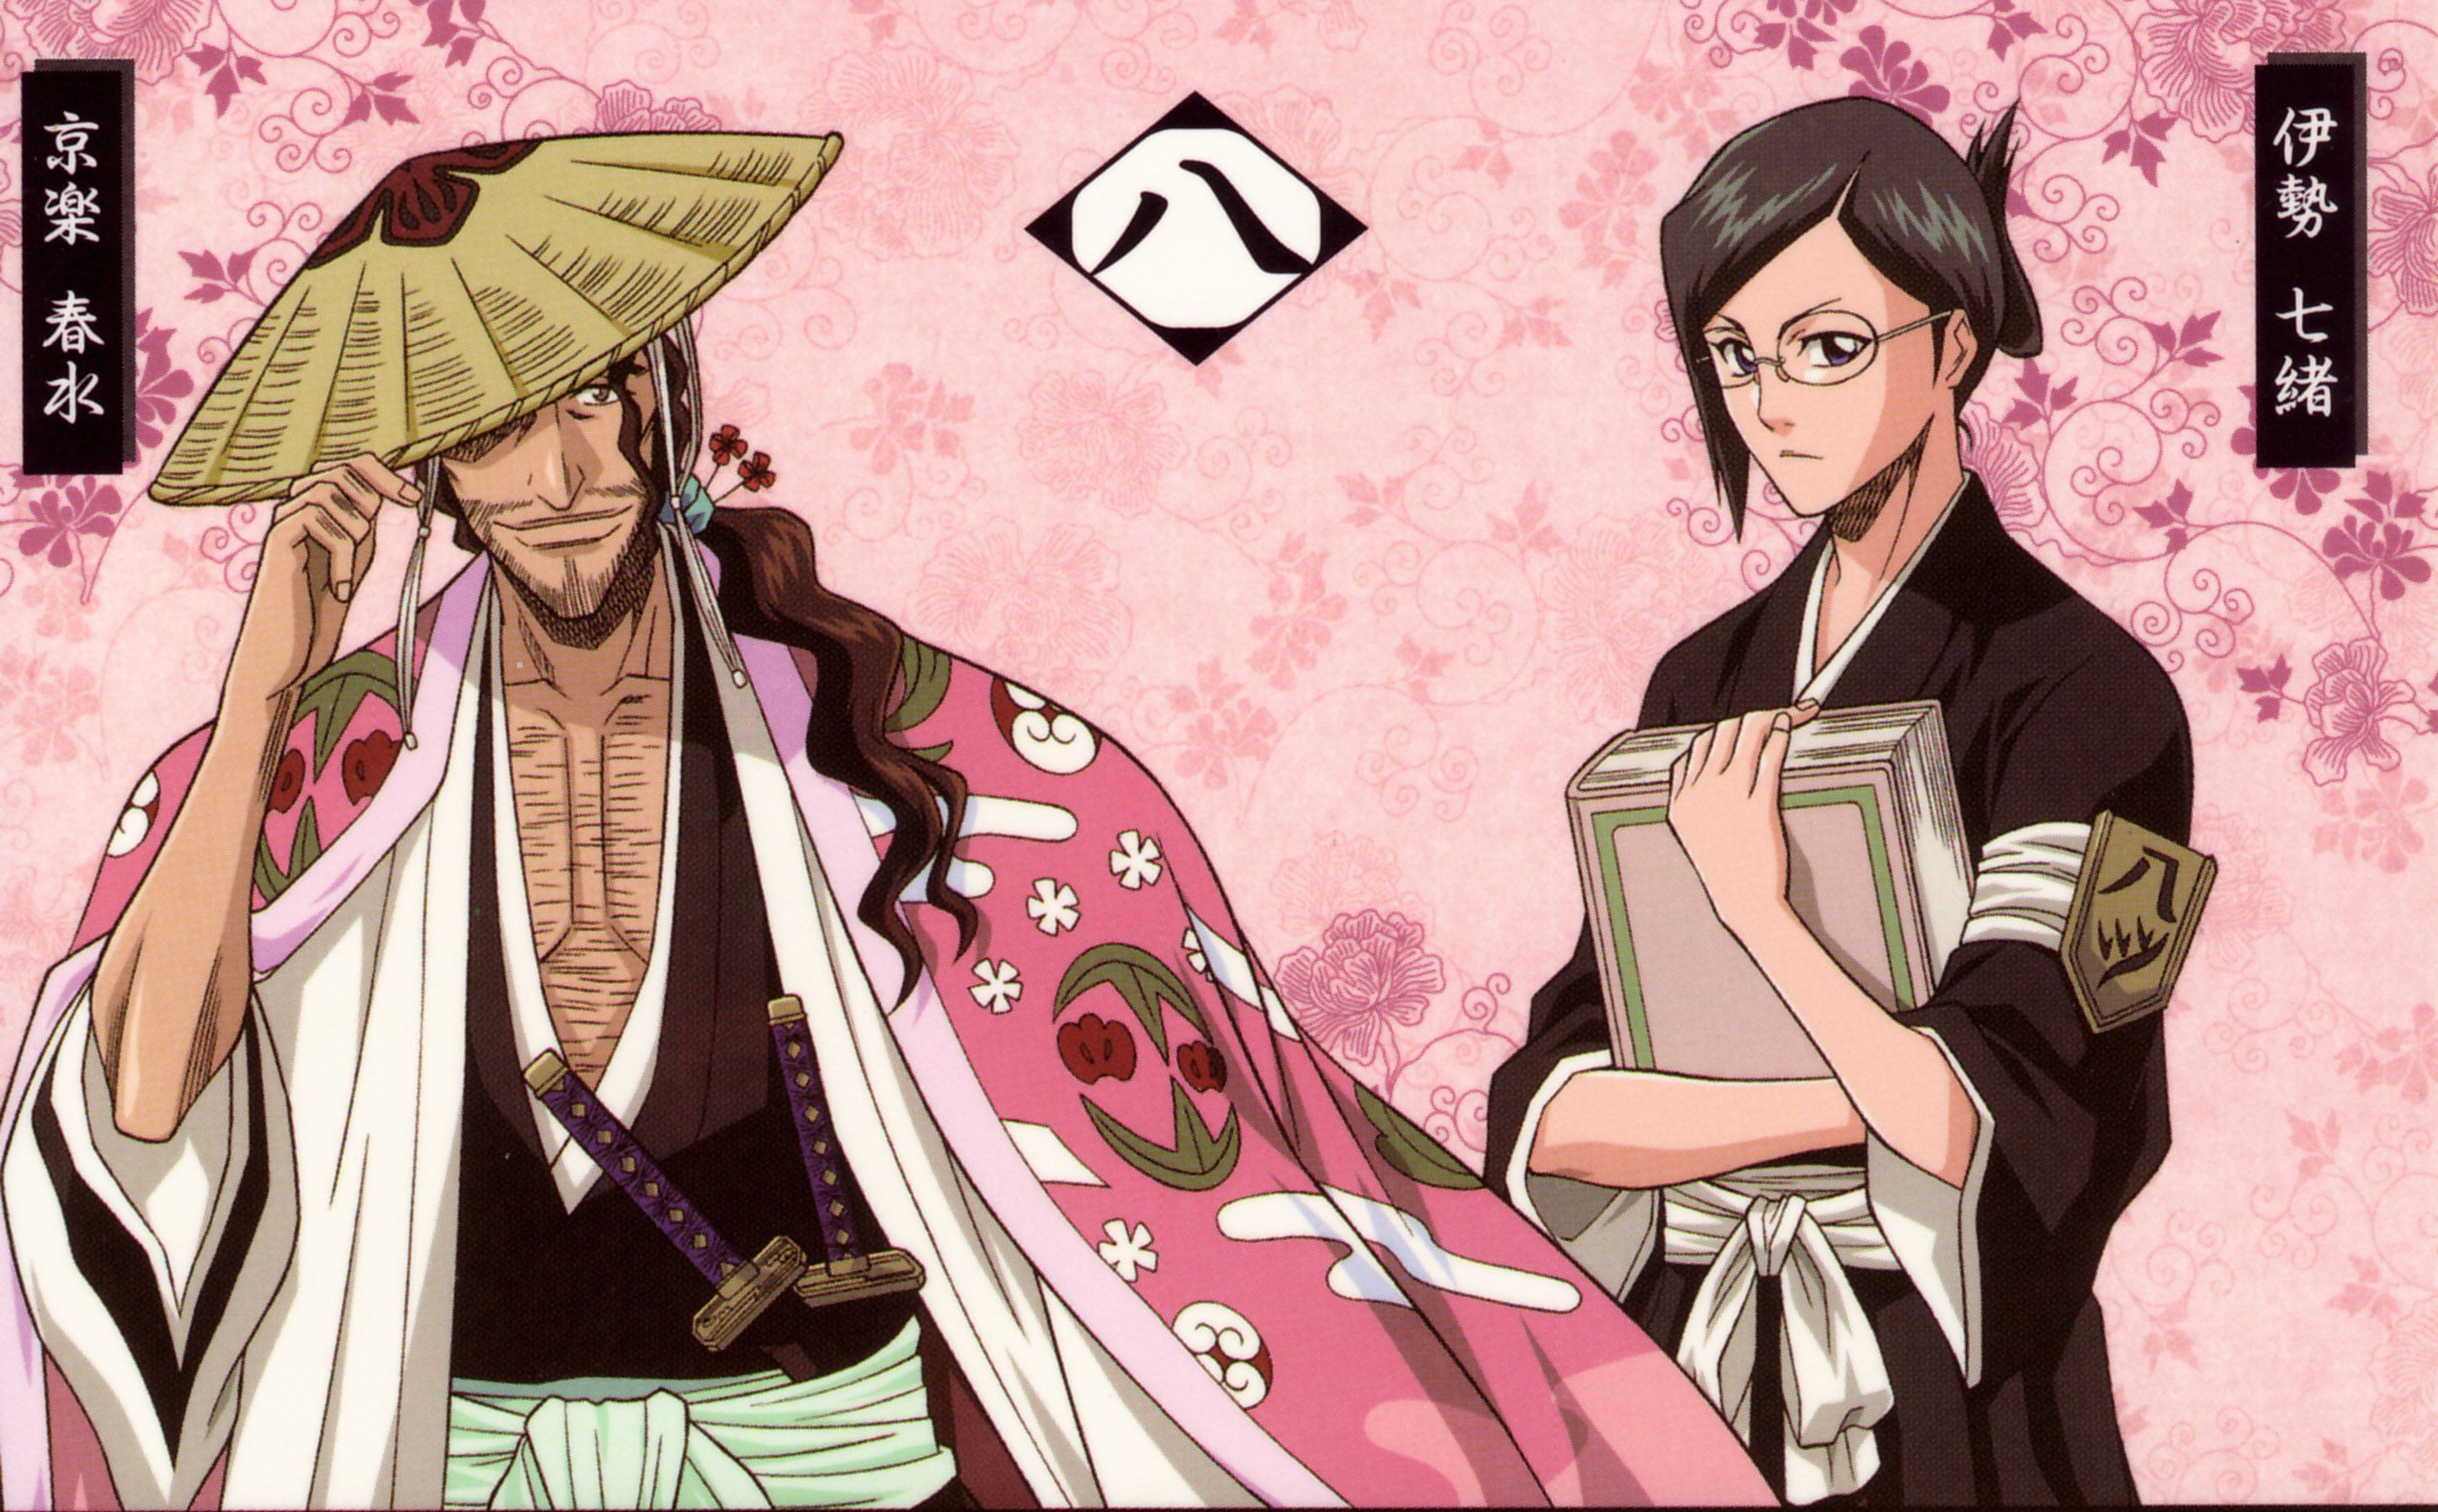 shunsui and nanao relationship questions